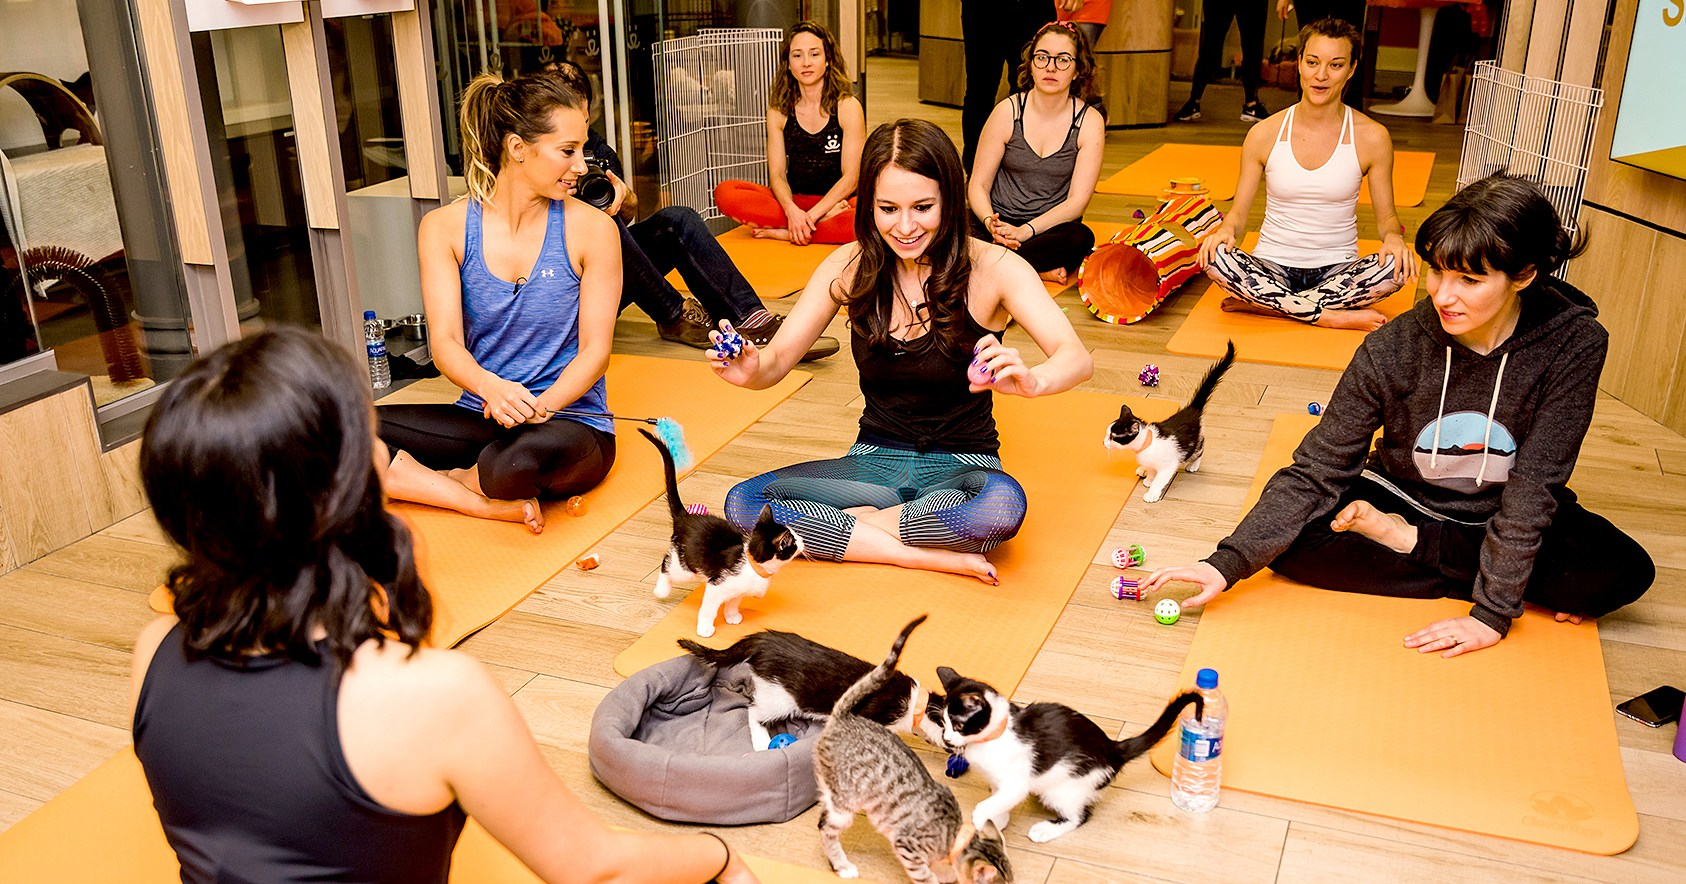 Us Weekly Tried Kitten Yoga and It Wasn't a Cat-astrophe – Watch!